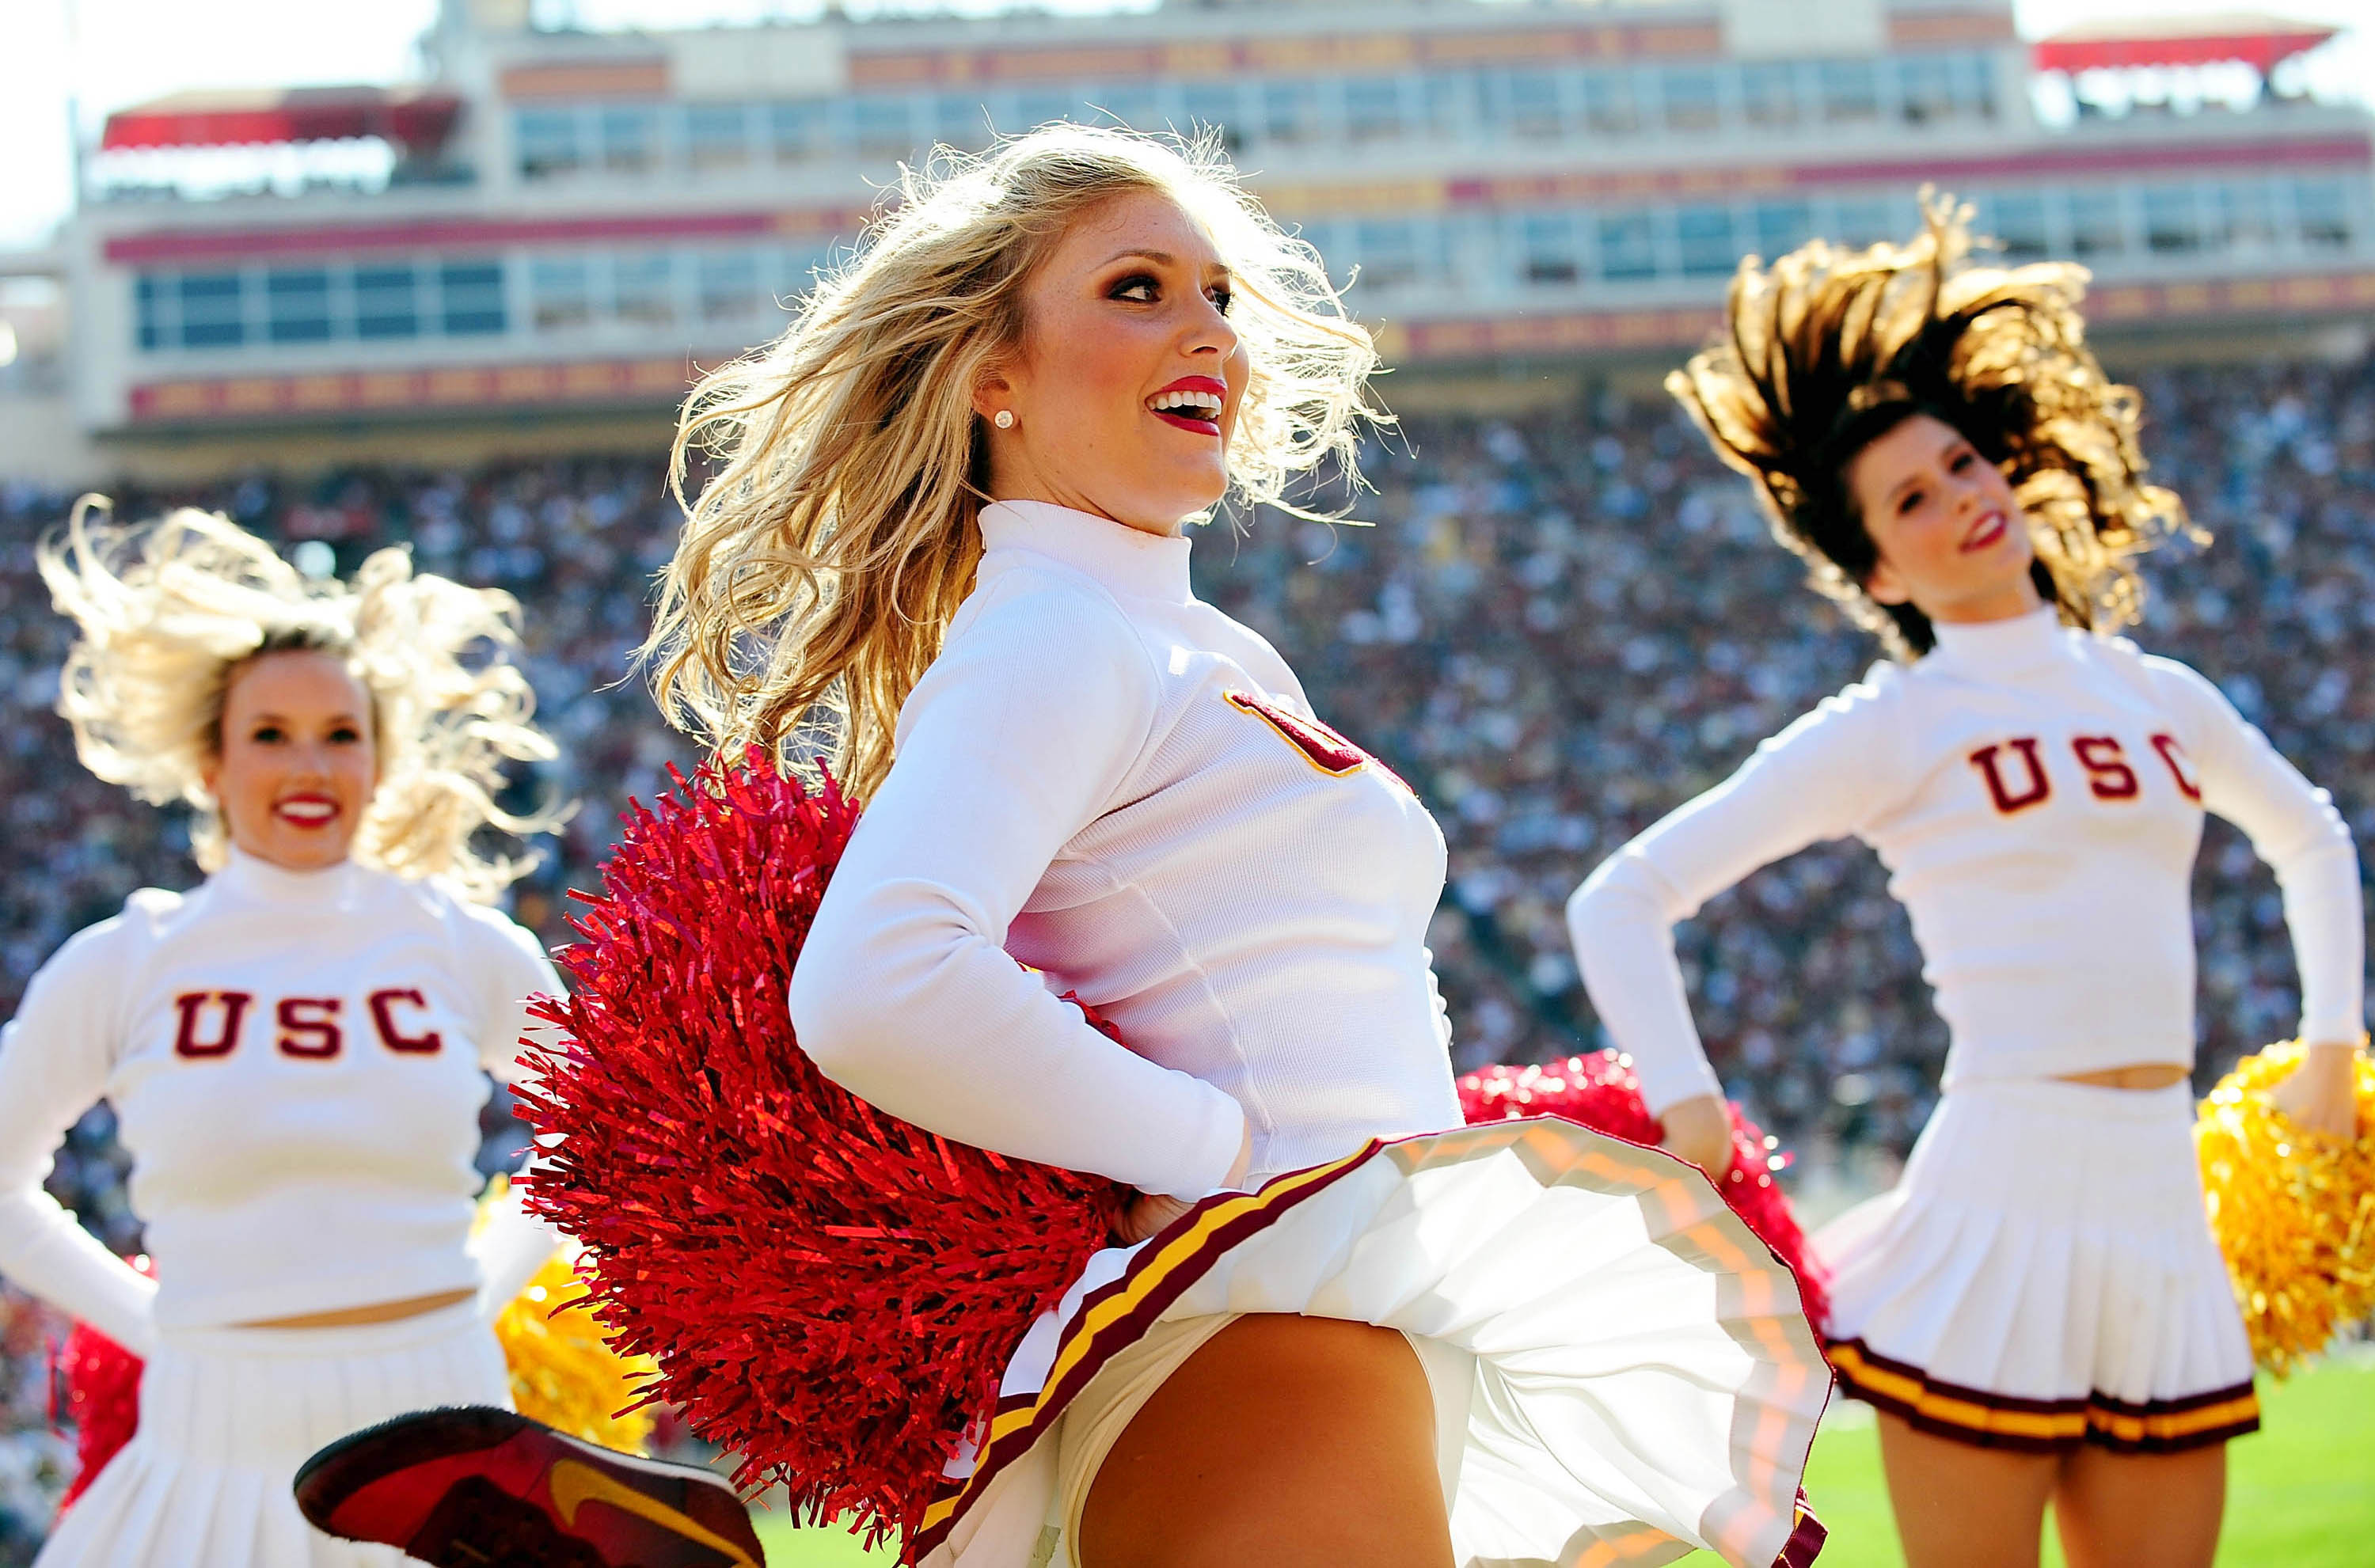 Southern California Trojans cheerleaders perform during the first half at the Los Angeles Memorial Coliseum. Mandatory Credit: Gary A. Vasquez-USA TODAY Sports